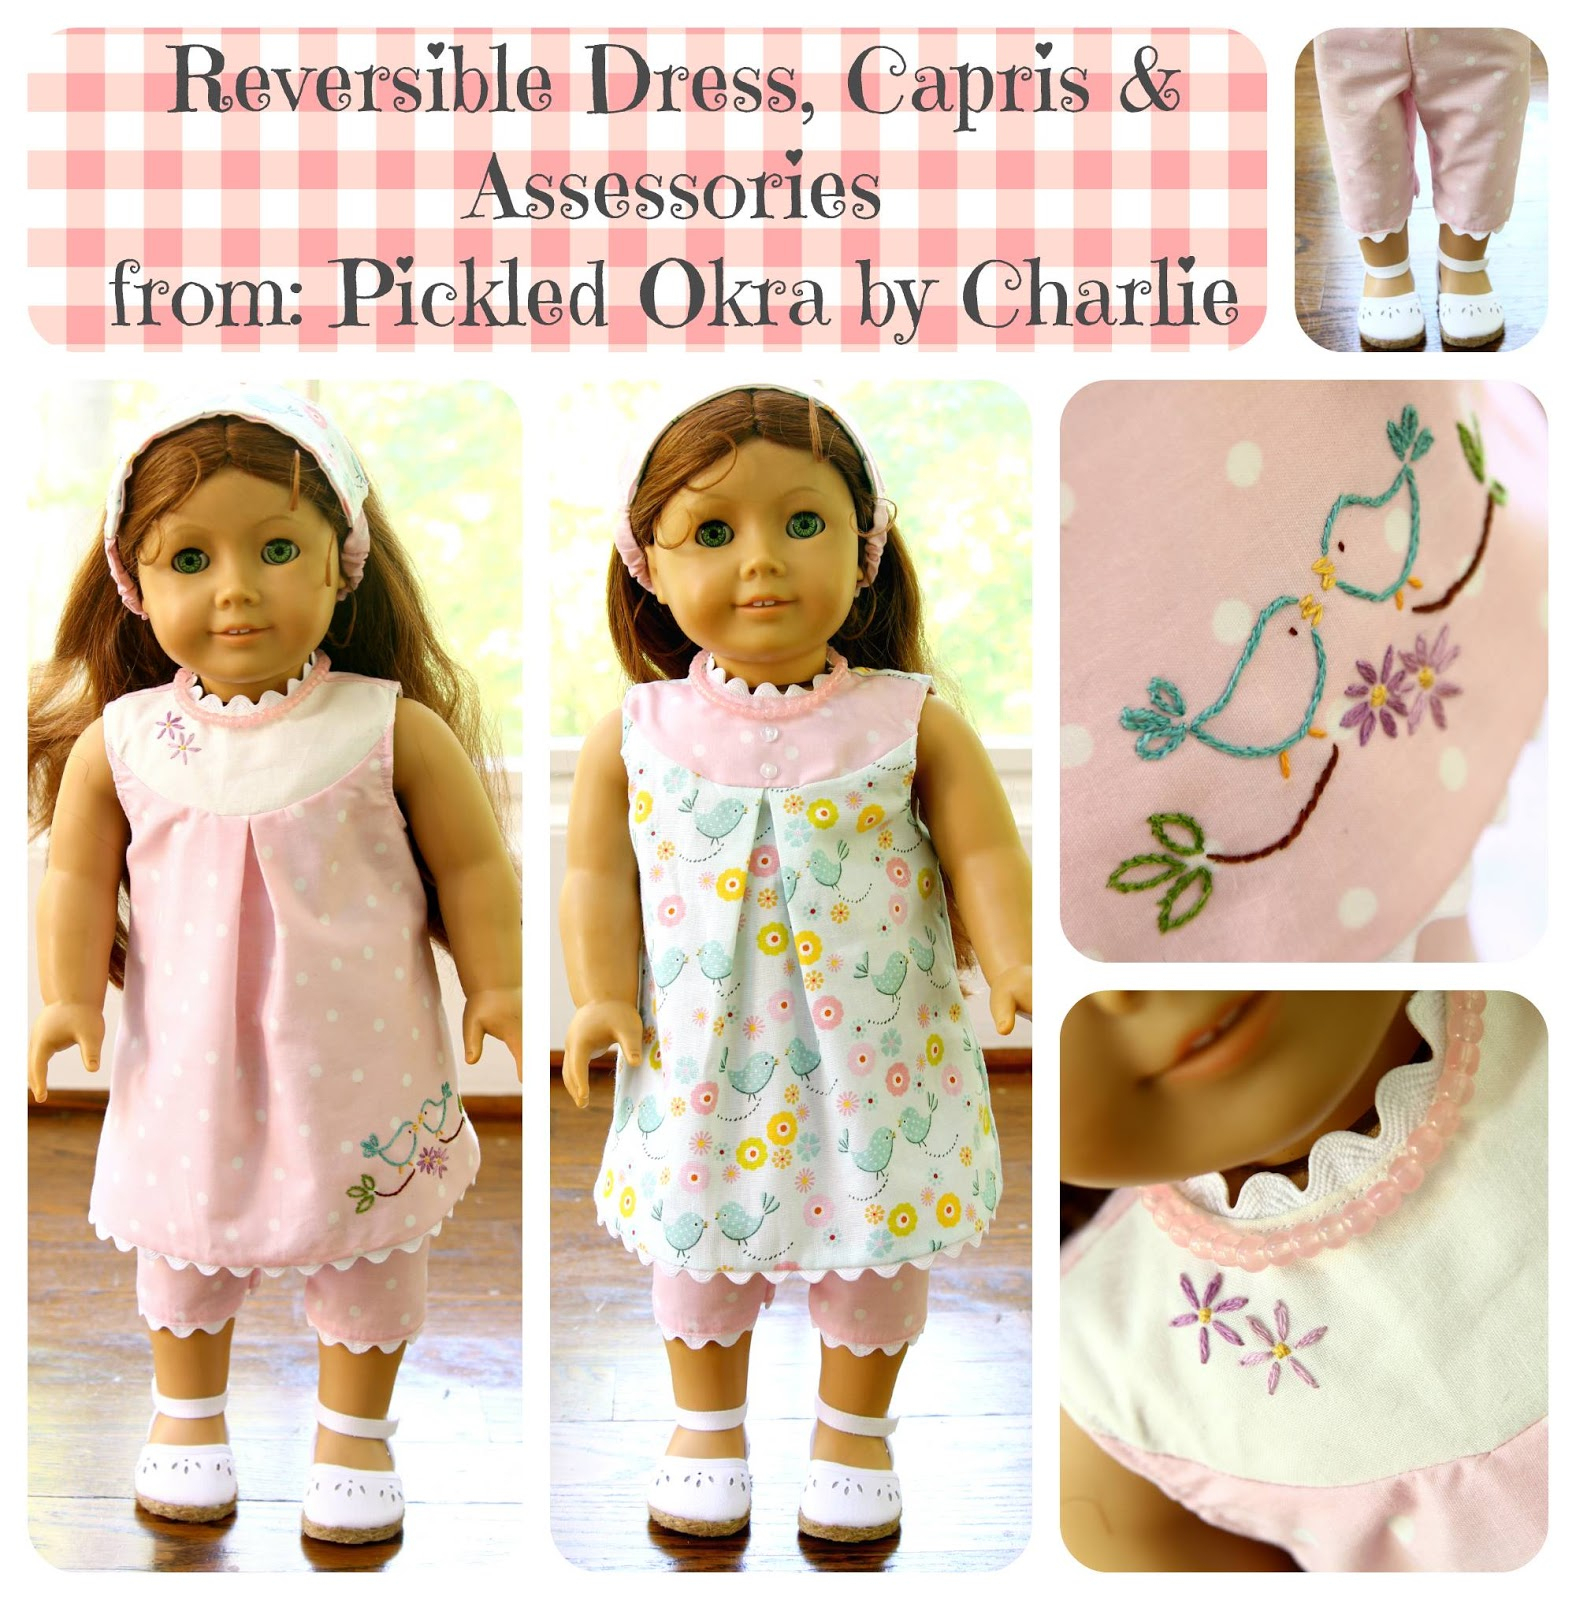 graphic about Free Printable Doll Clothes Patterns for 18 Inch Dolls identify Free of charge Printable Crochet Doll Clothing Models For 18 Inch